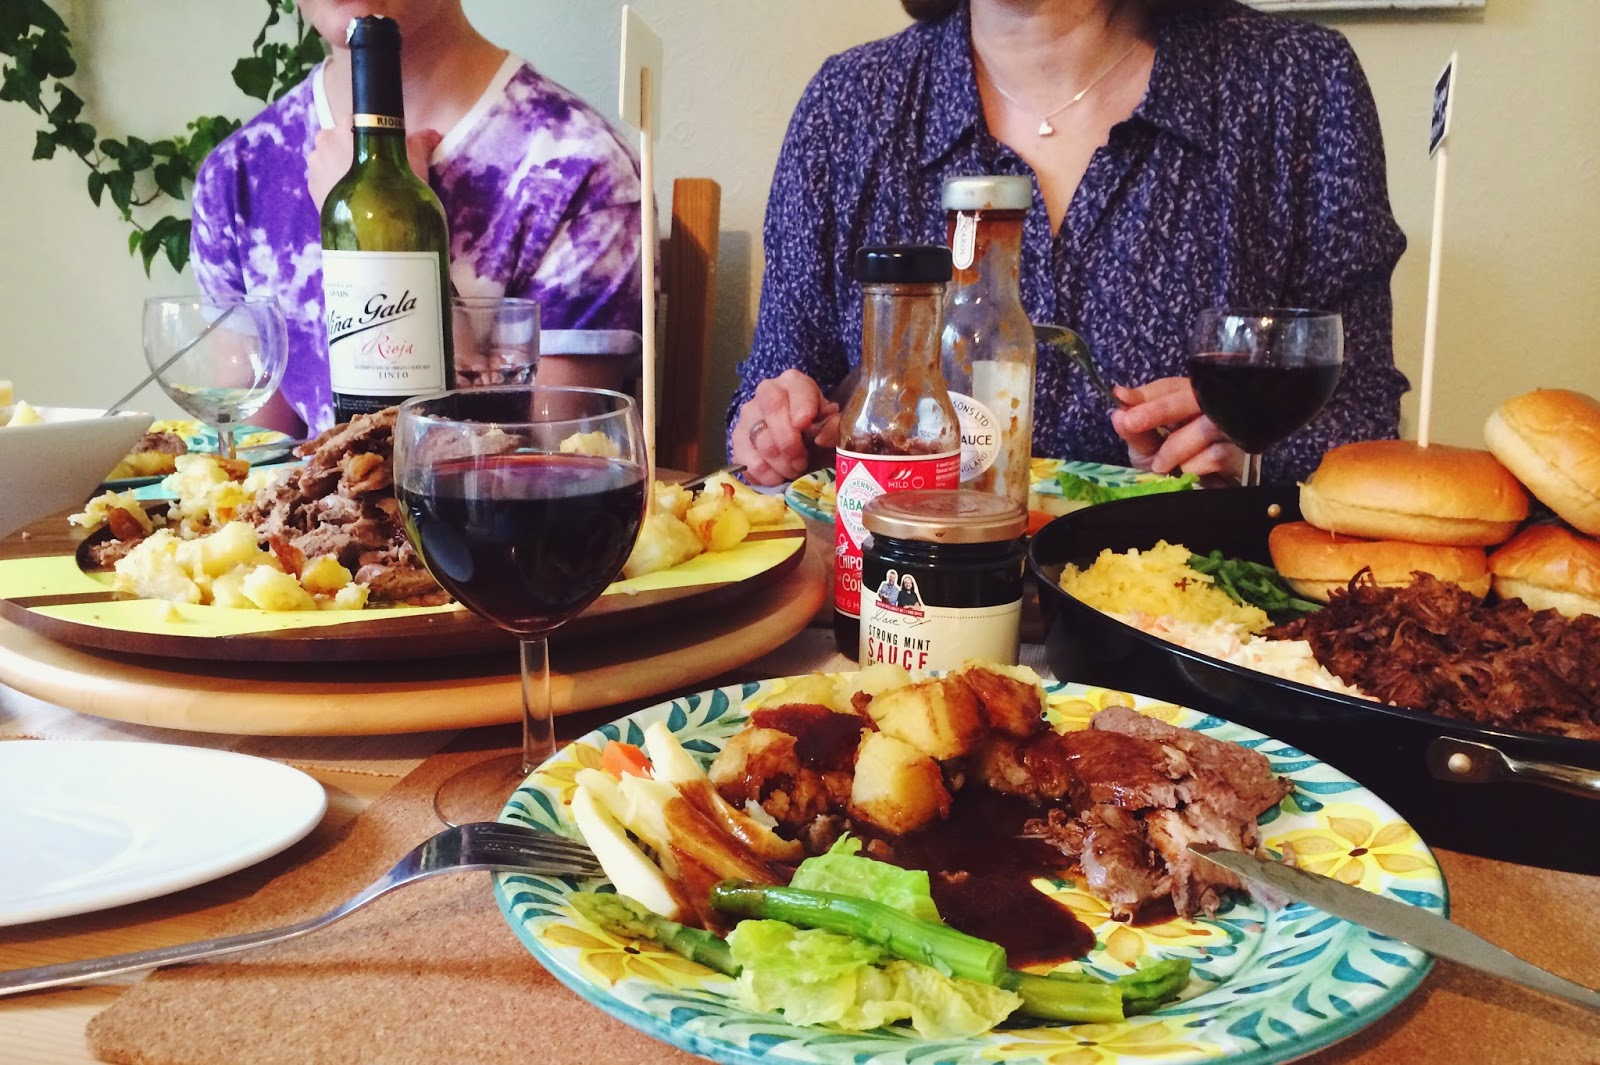 FashionFake a UK fashion and lifestyle blog. This Easter, I cooked up a feast of pulled beef slow cooked in cola sauce, and a roast lamb with a crust of garlic and herbs. These recipes are easy and delicious - perfect for a family get together!